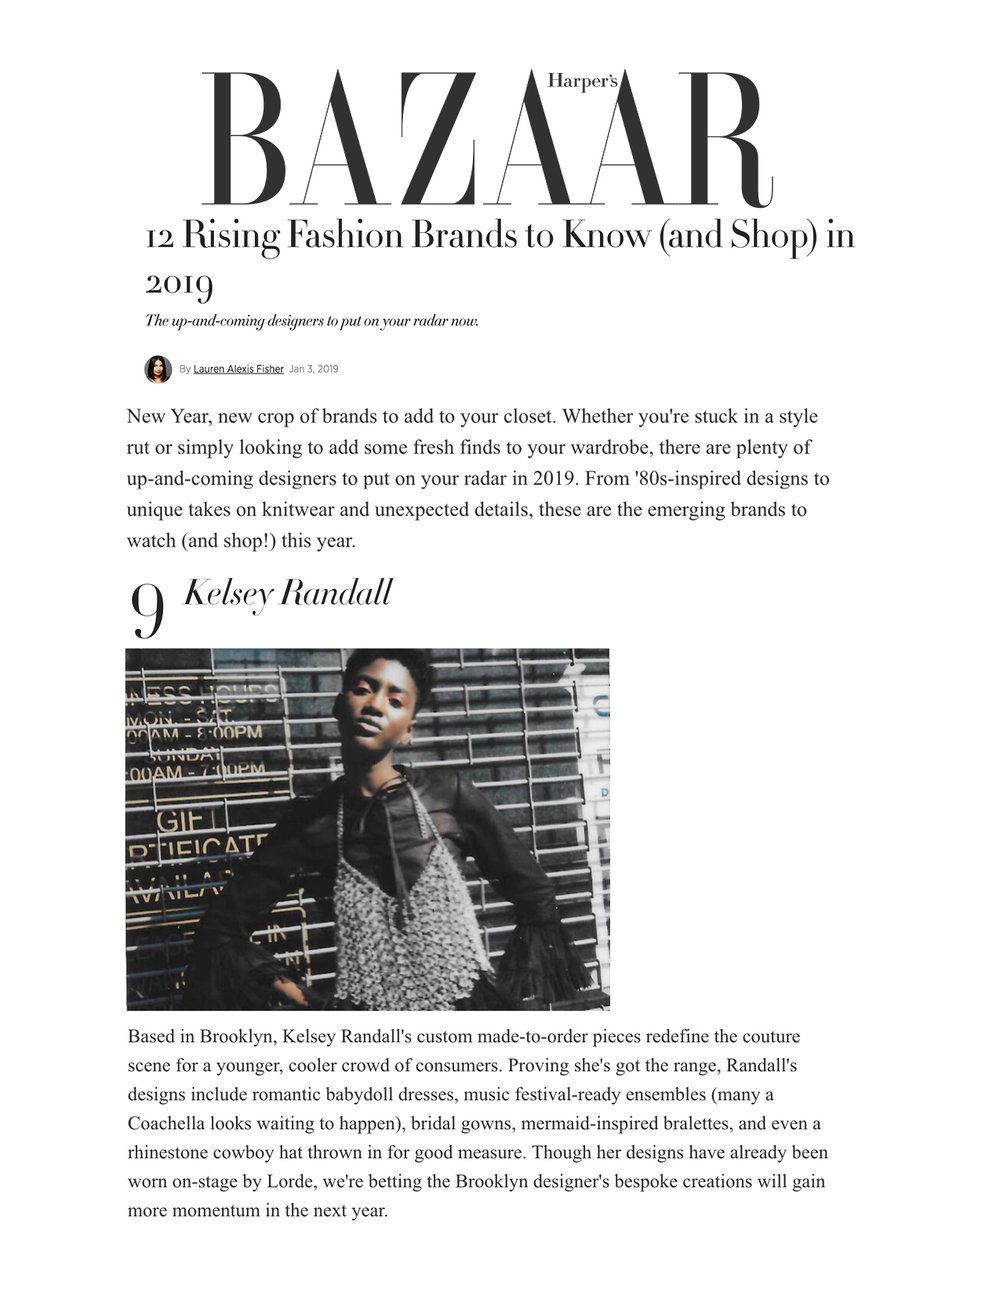 Harper's Bazaar January 2019 feature 12 designers to watch in 2019 fashion rising stars up-and-coming ones to watch emerging designer best new designers kelsey randall bespoke custom made-to-measure couture demi-couture choachella mermaid bridal rhinestone cowboy hat crystal chainmail